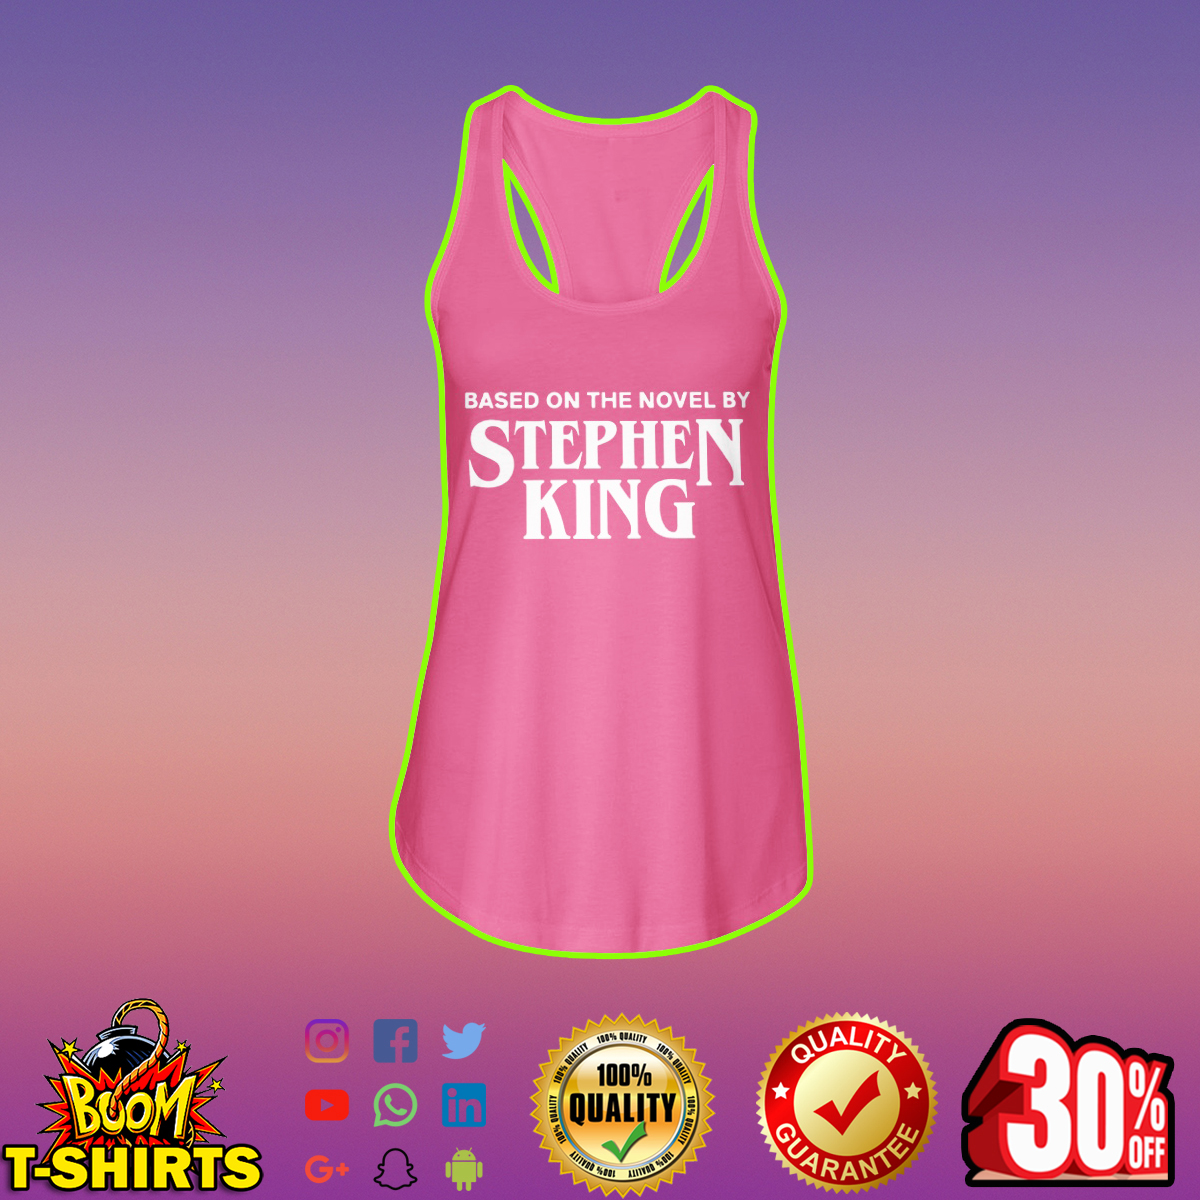 Based on the novel by Stephen King flowy tank